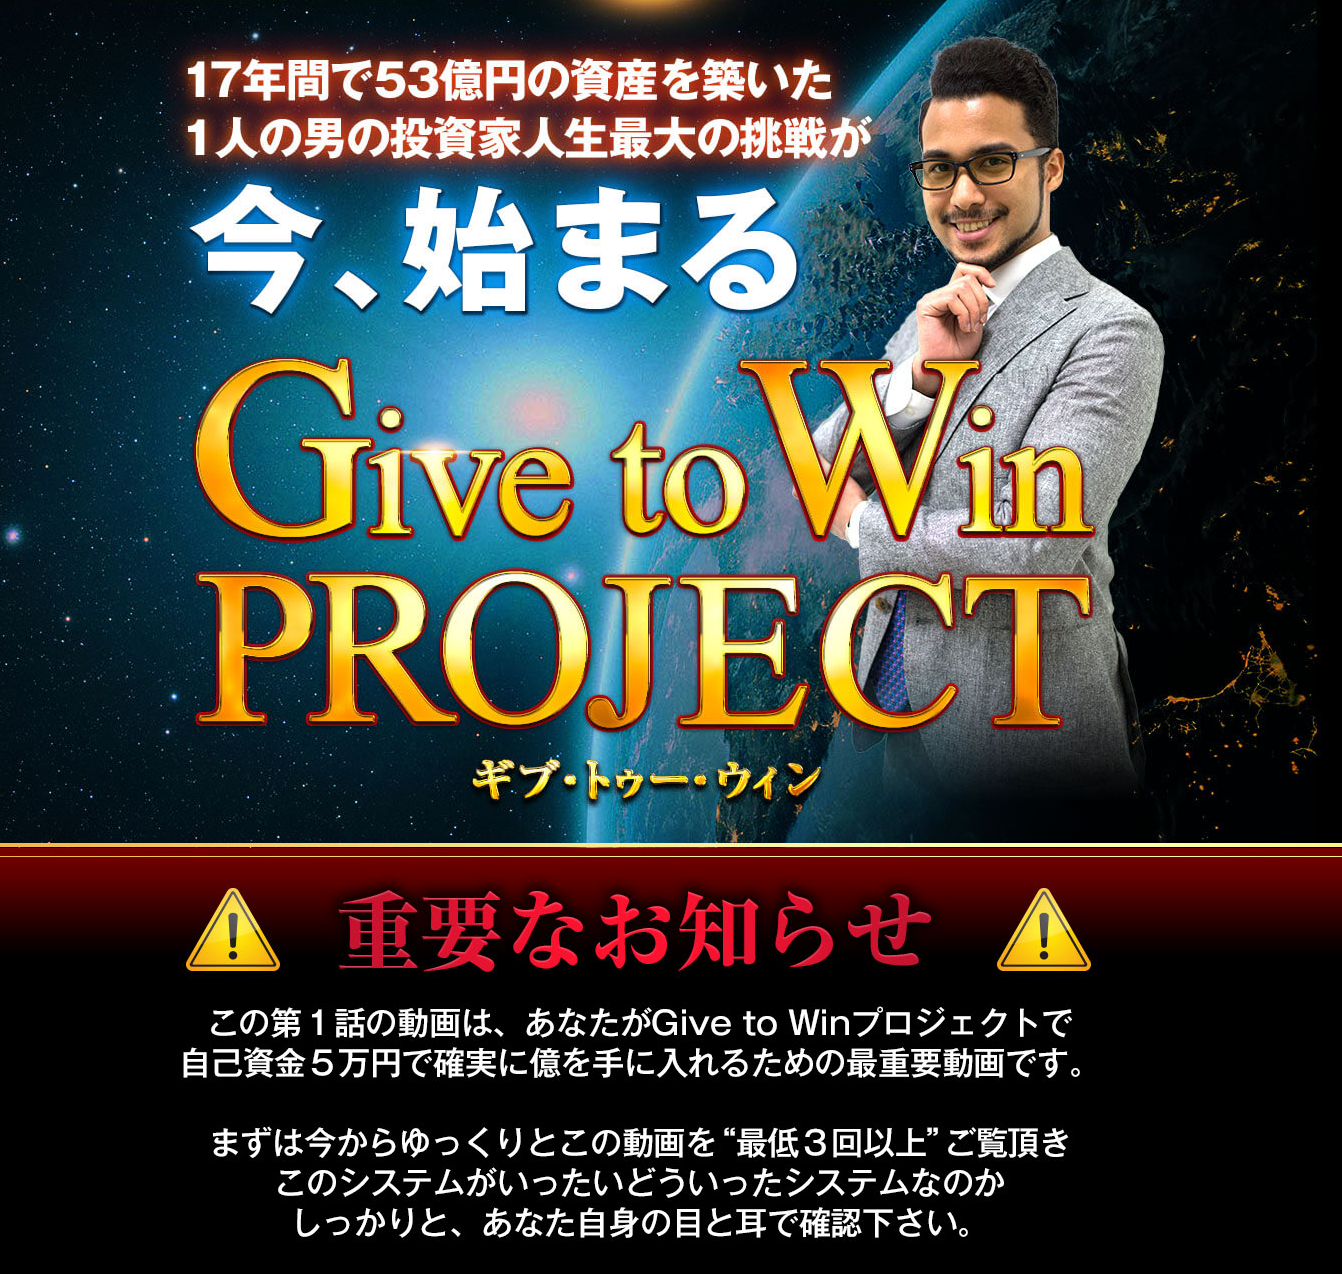 Give to Win PROJECT